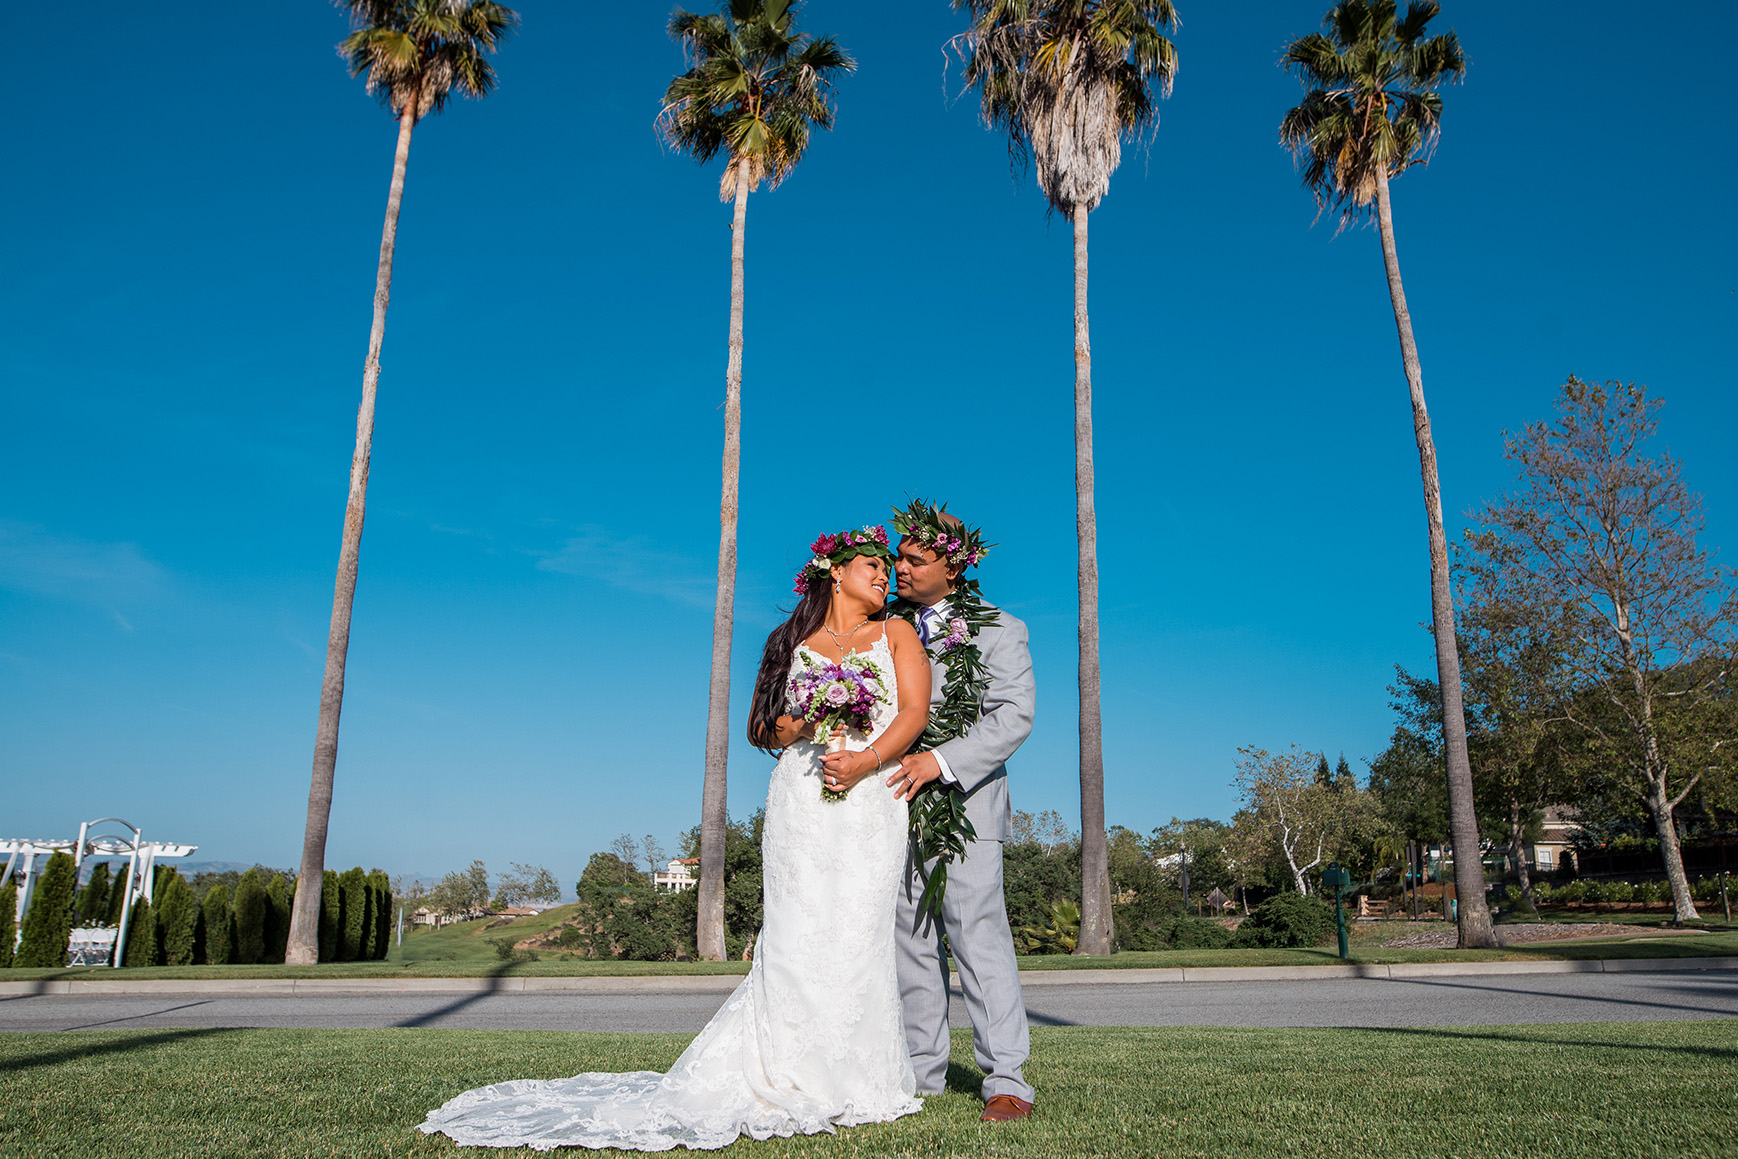 Charming Couple - Eagle Ridge - Gilroy, California - Santa Clara County - Wedgewood Weddings